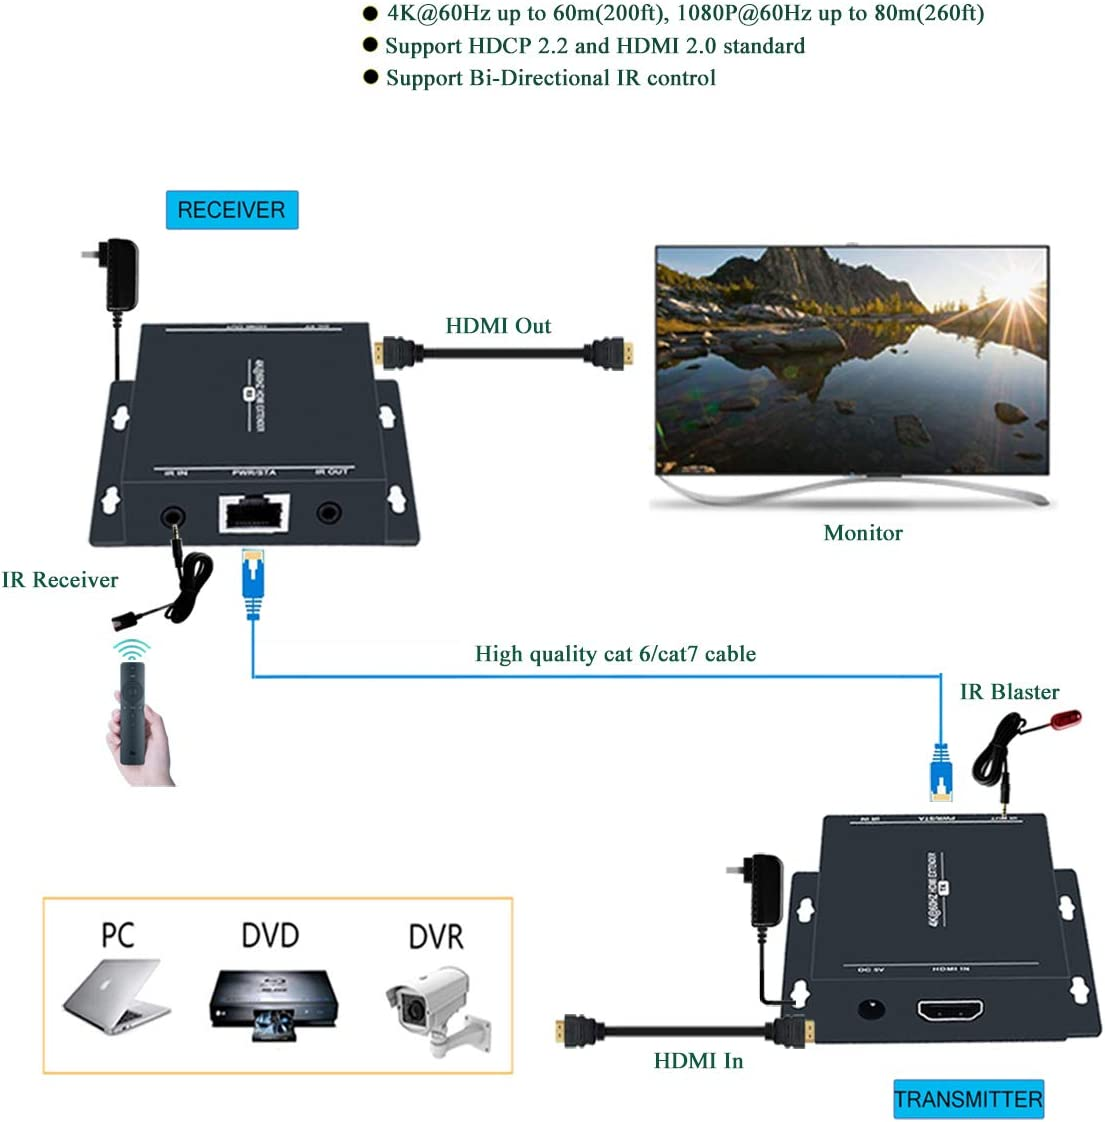 alpha-ene.co.jp Audio and Video Simultaneous Transmission Support ...